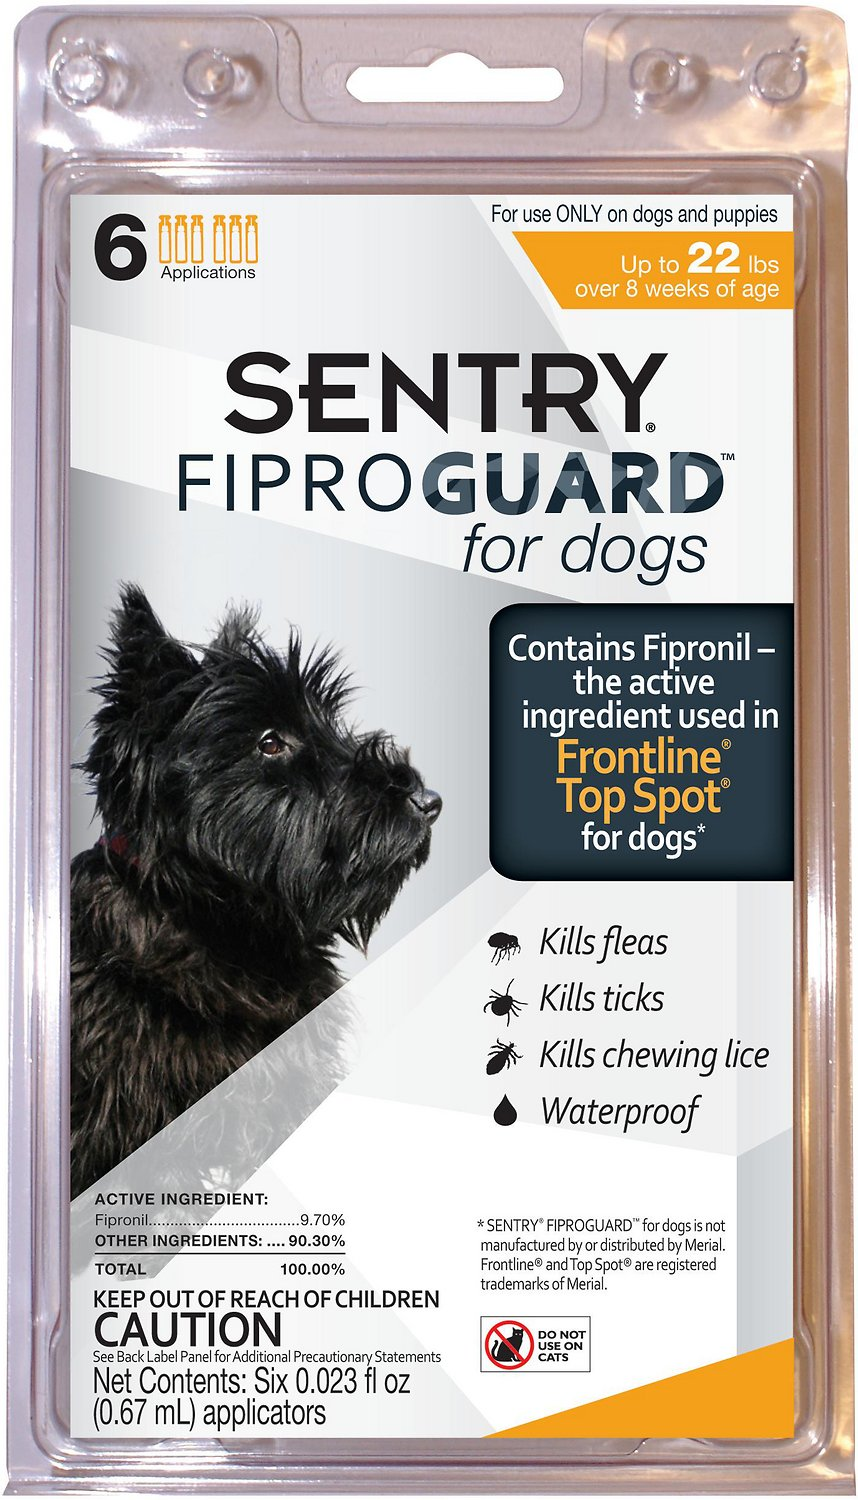 Sentry FiproGuard Flea & Tick Squeeze-On for Dogs (up to 22 lbs)